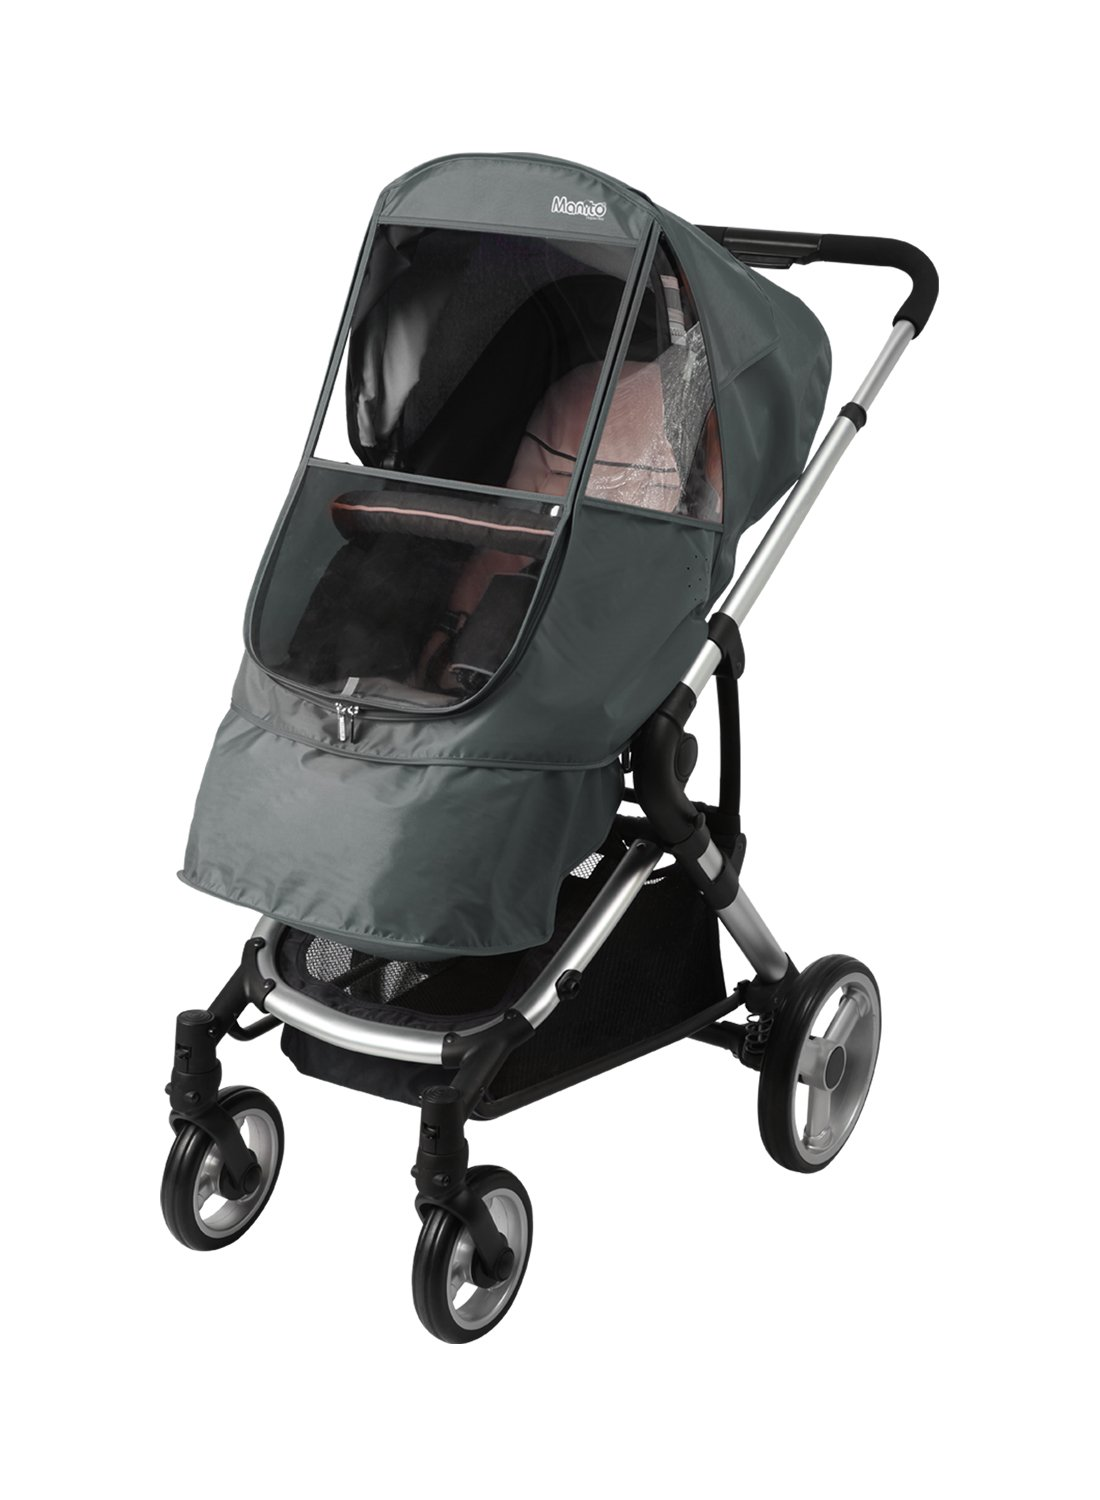 Manito Elegance Beta Stroller Weather Shield / Rain Cover (Grey) by Manito (Image #1)